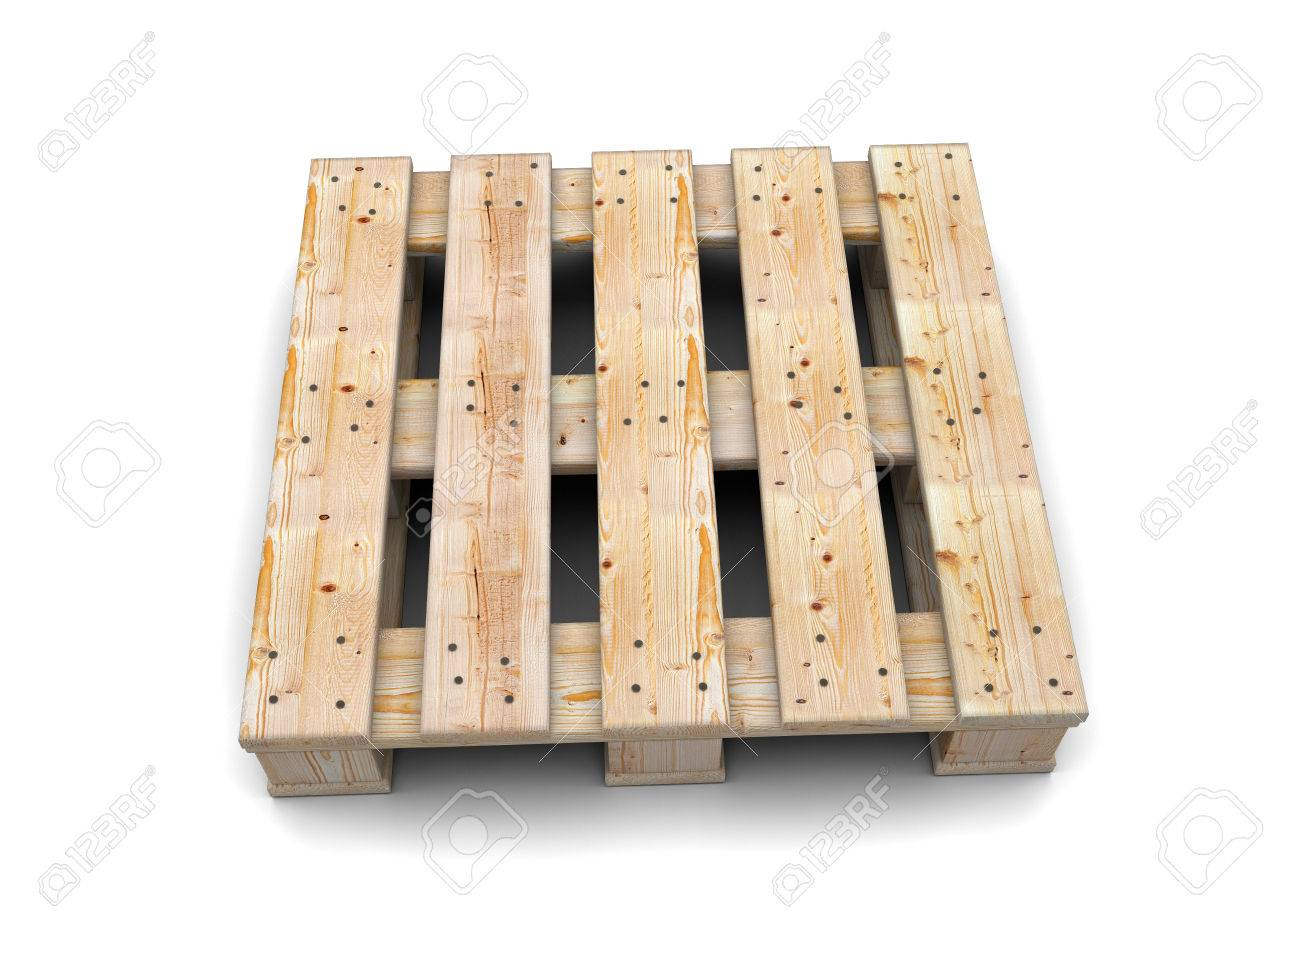 Wooden Pallet Isolated On White Background Top View Stock Photo